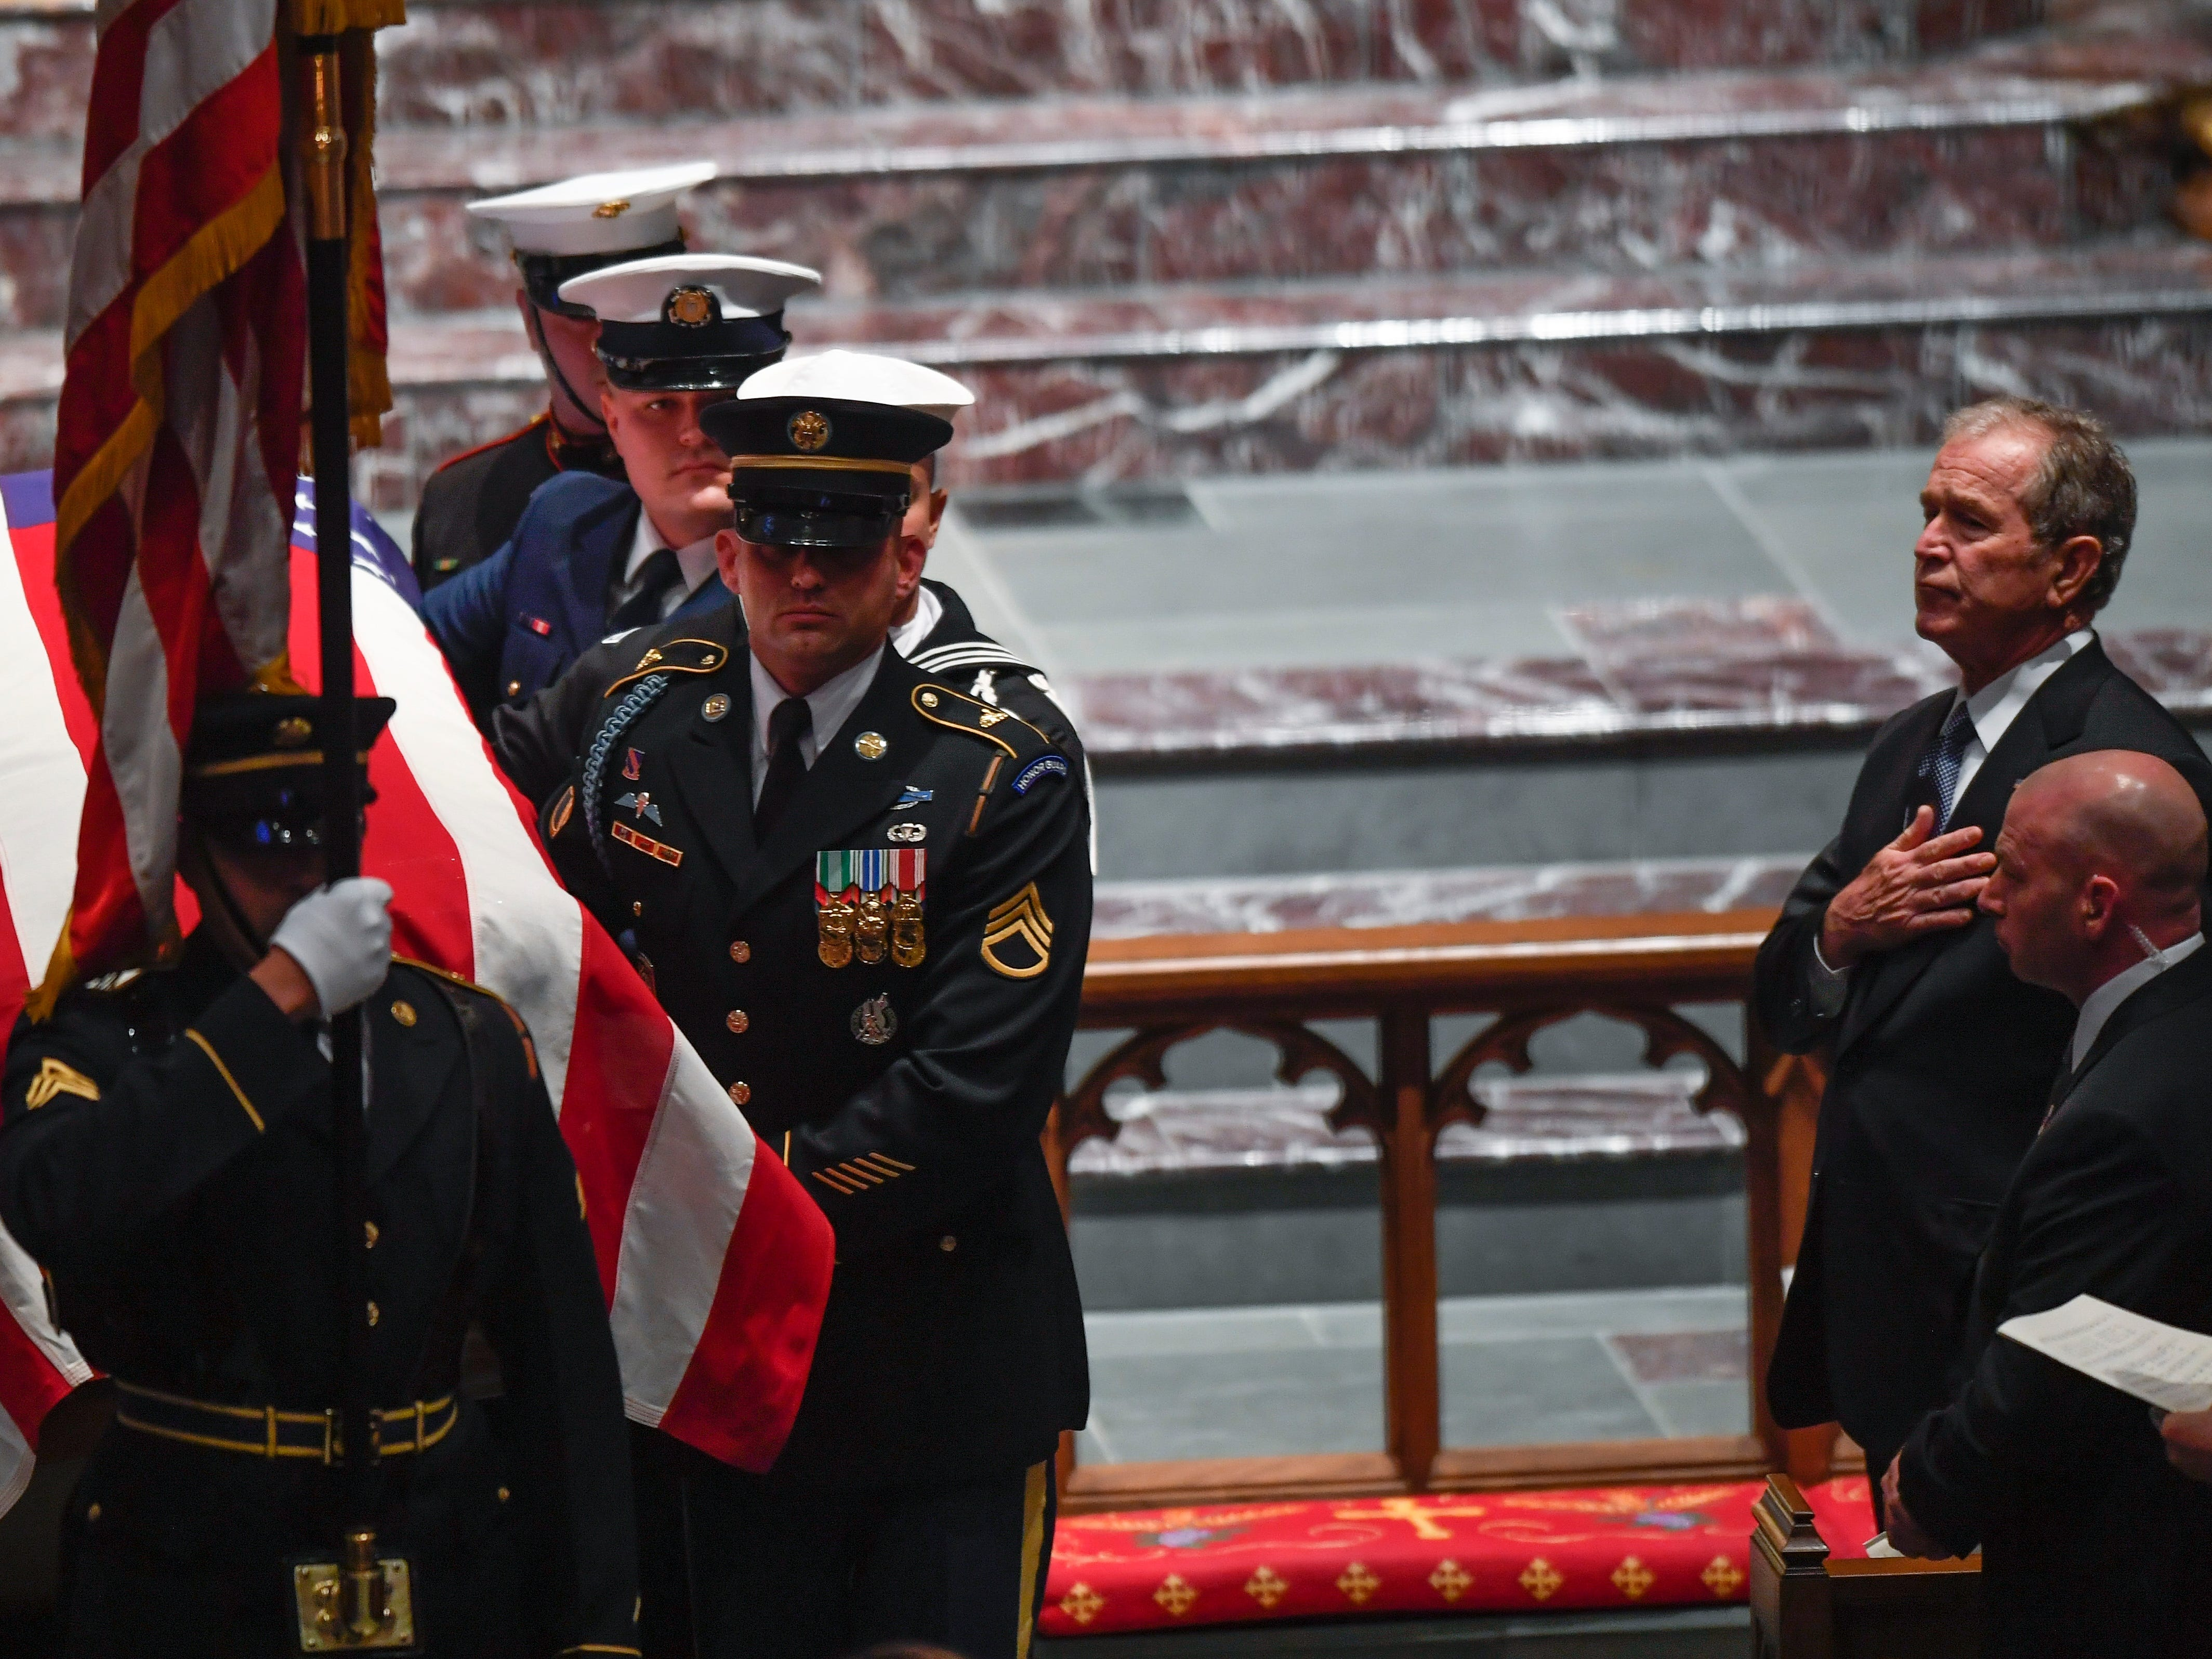 Former President George W. Bush watches at the conclusion of the funeral service for former President George H.W. Bush at St. Martin's Episcopal Church in Houston, Thursday, Dec. 6, 2018.